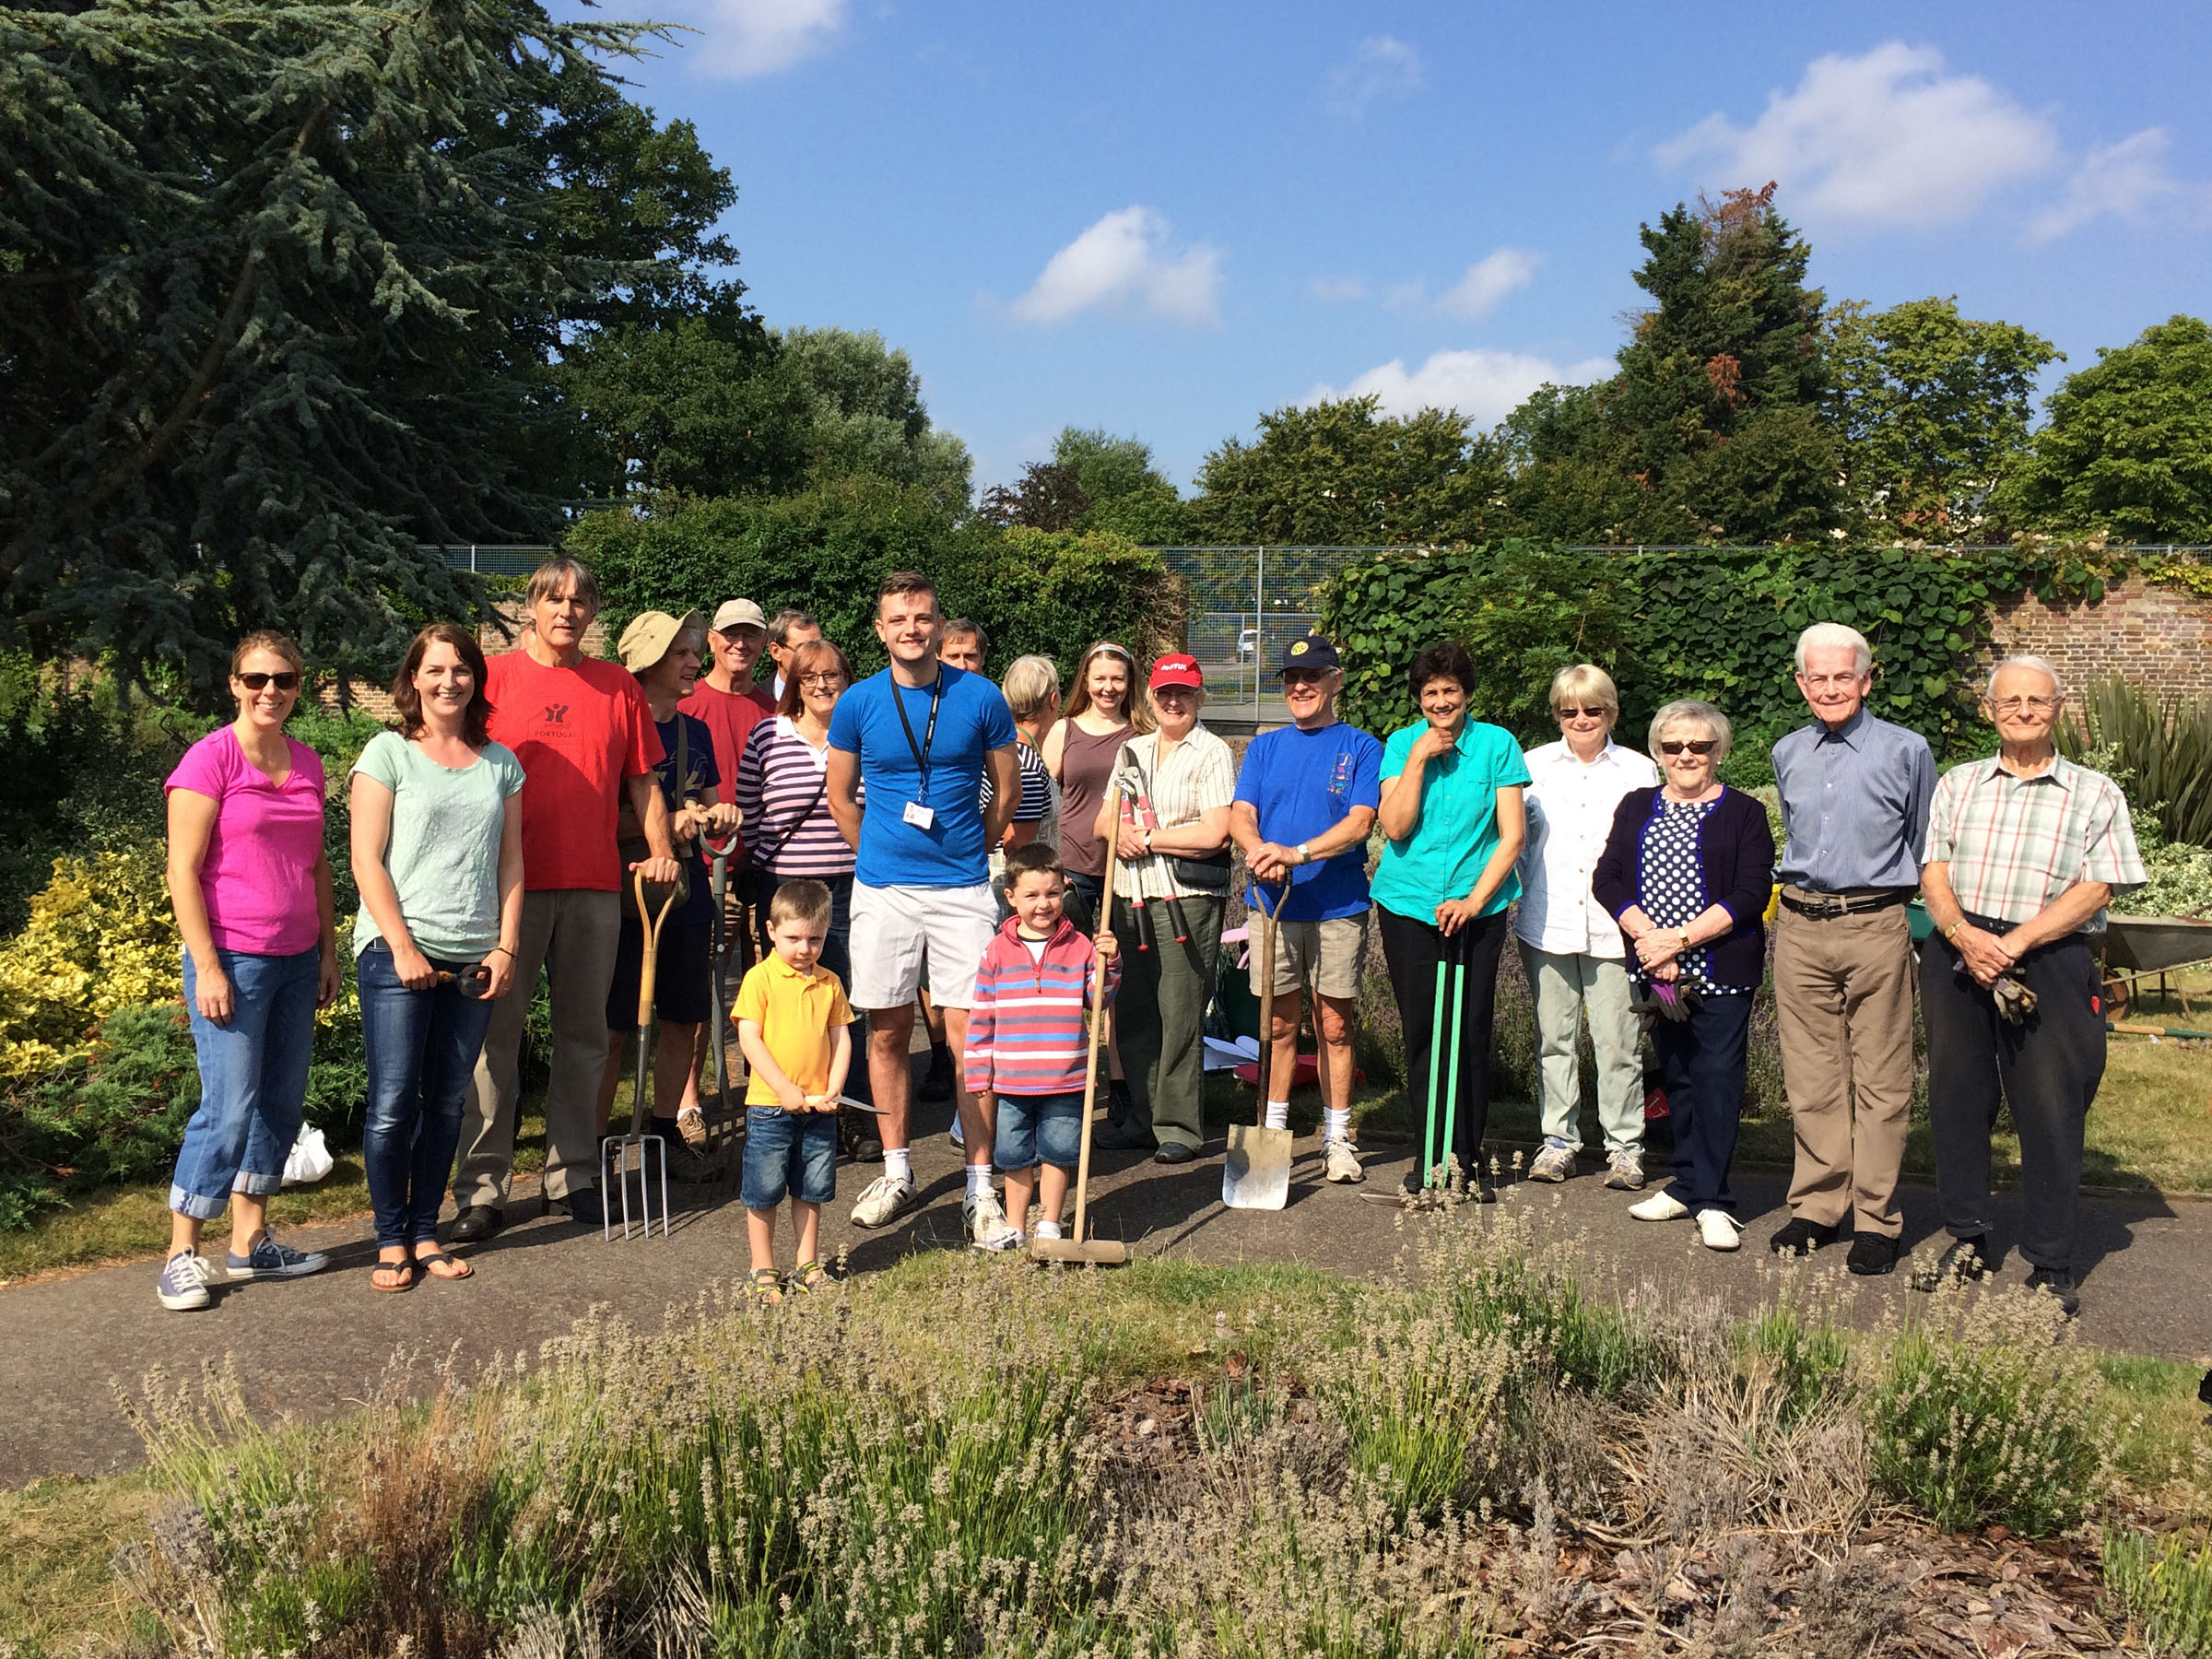 Gardening Group: Sidcup Community Garden Project